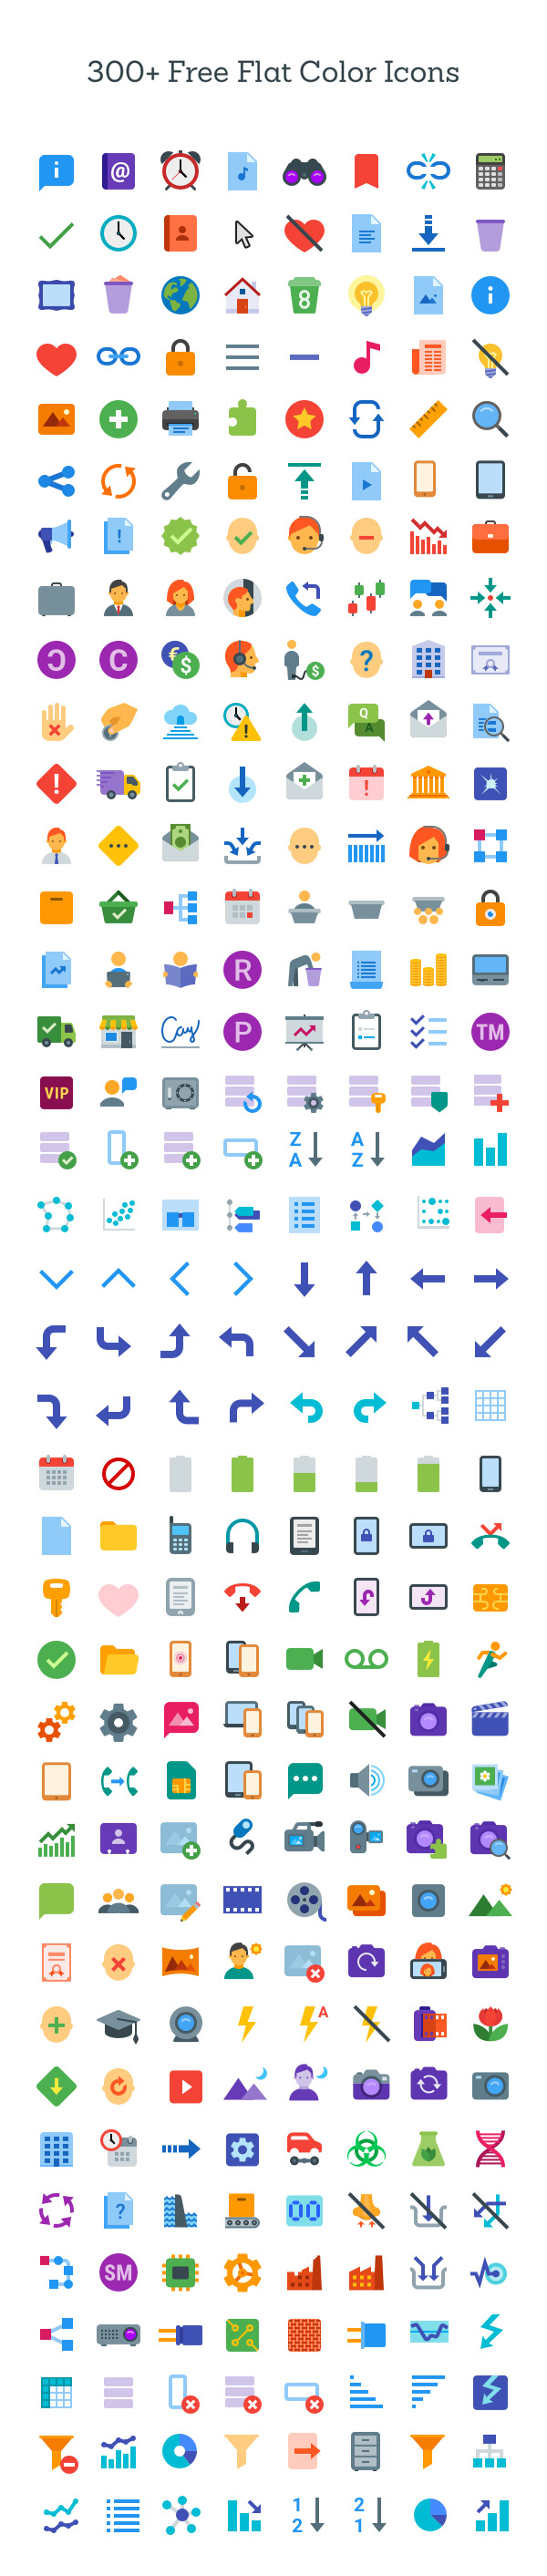 Free Flat Icons For Websites